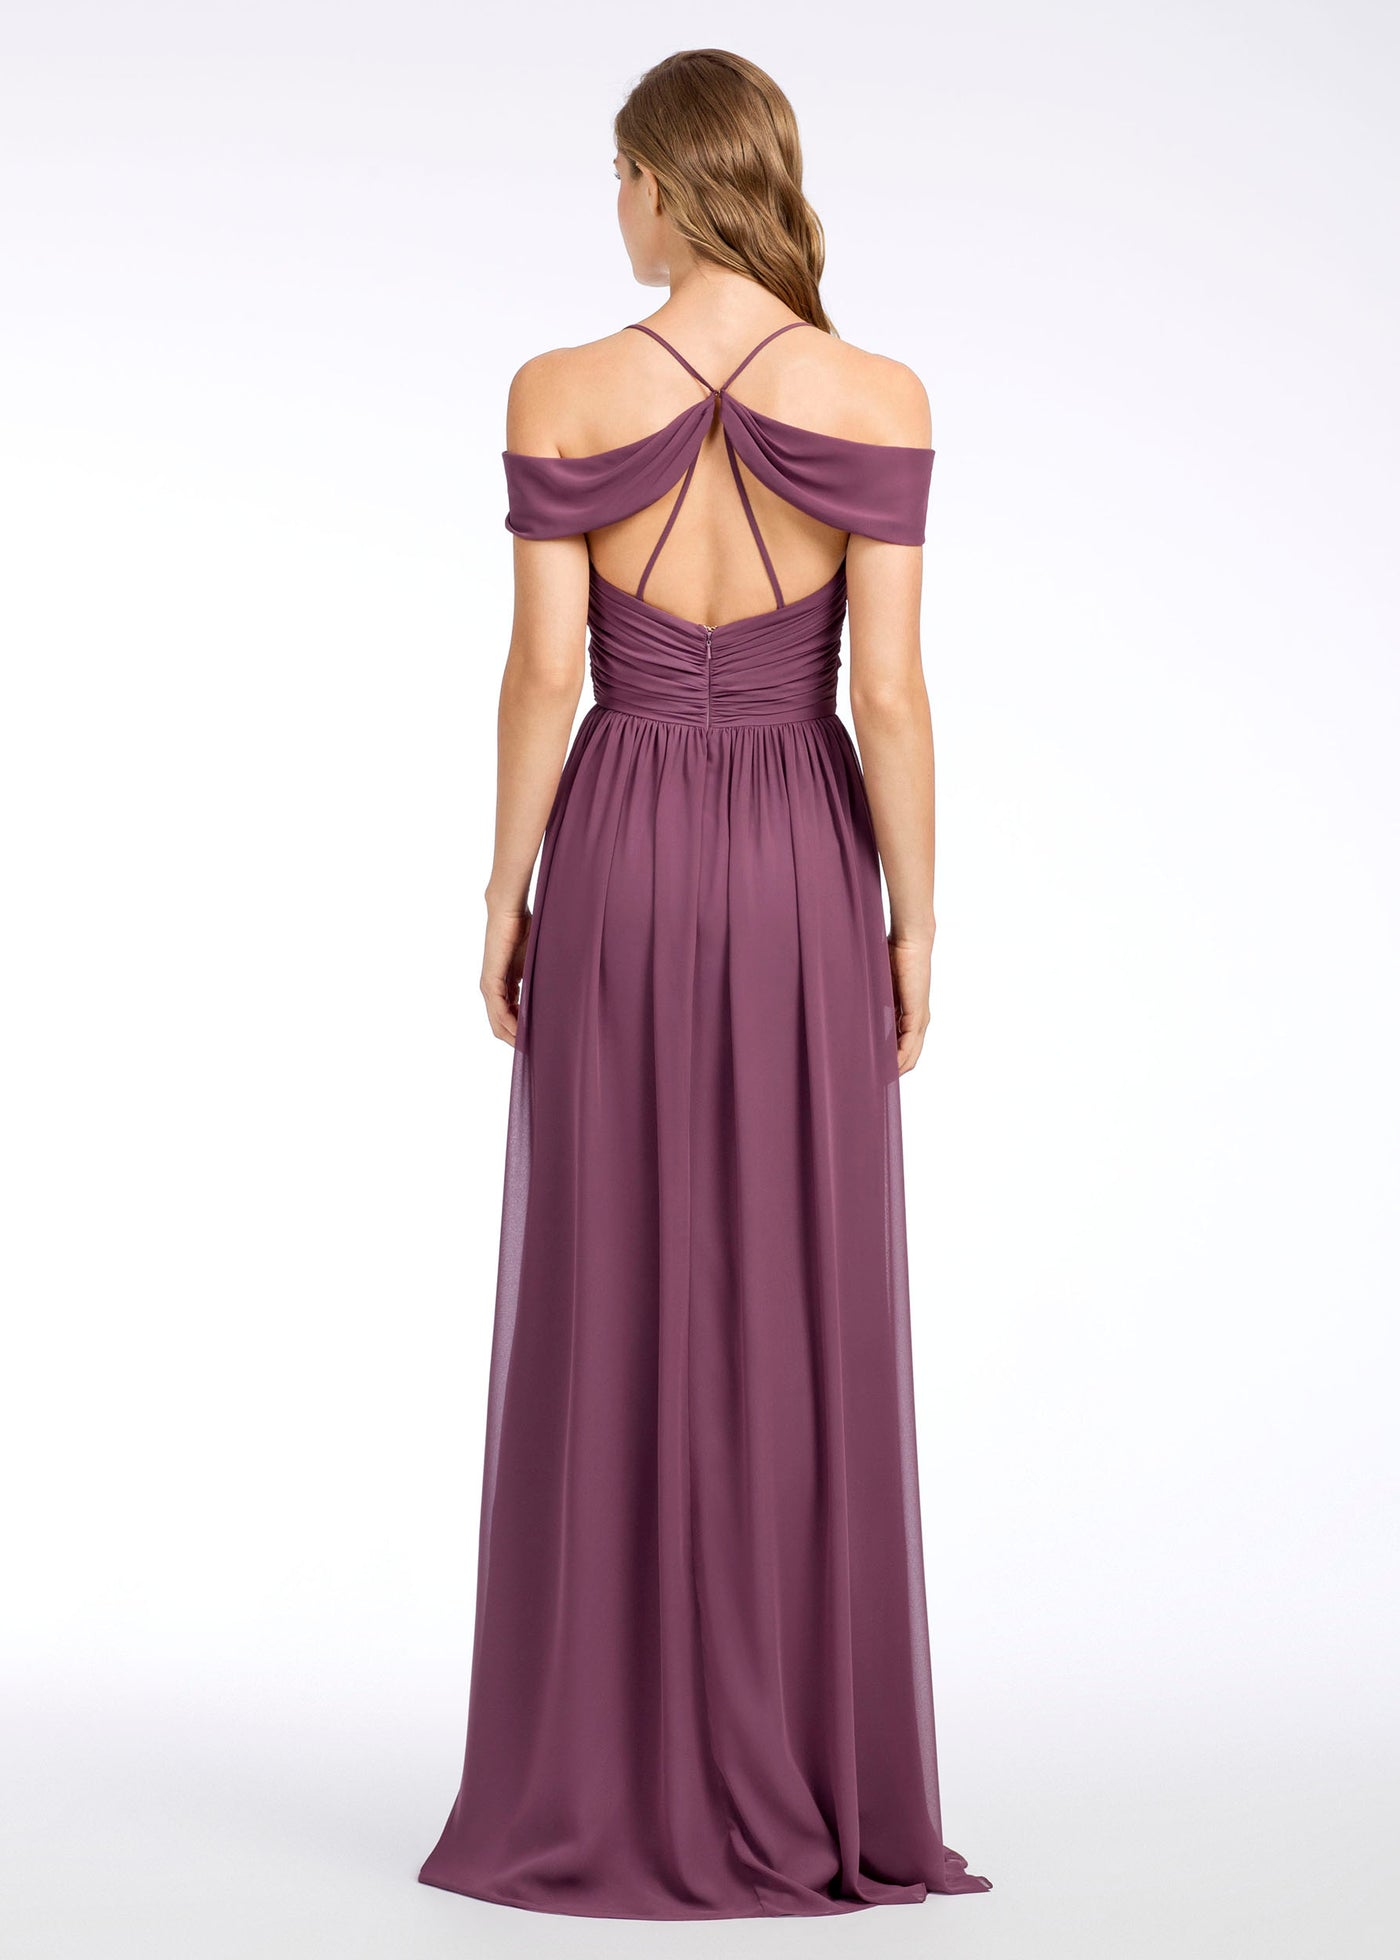 Hayley Paige Occasions - Bridesmaid Dresses - Eternal Bridal